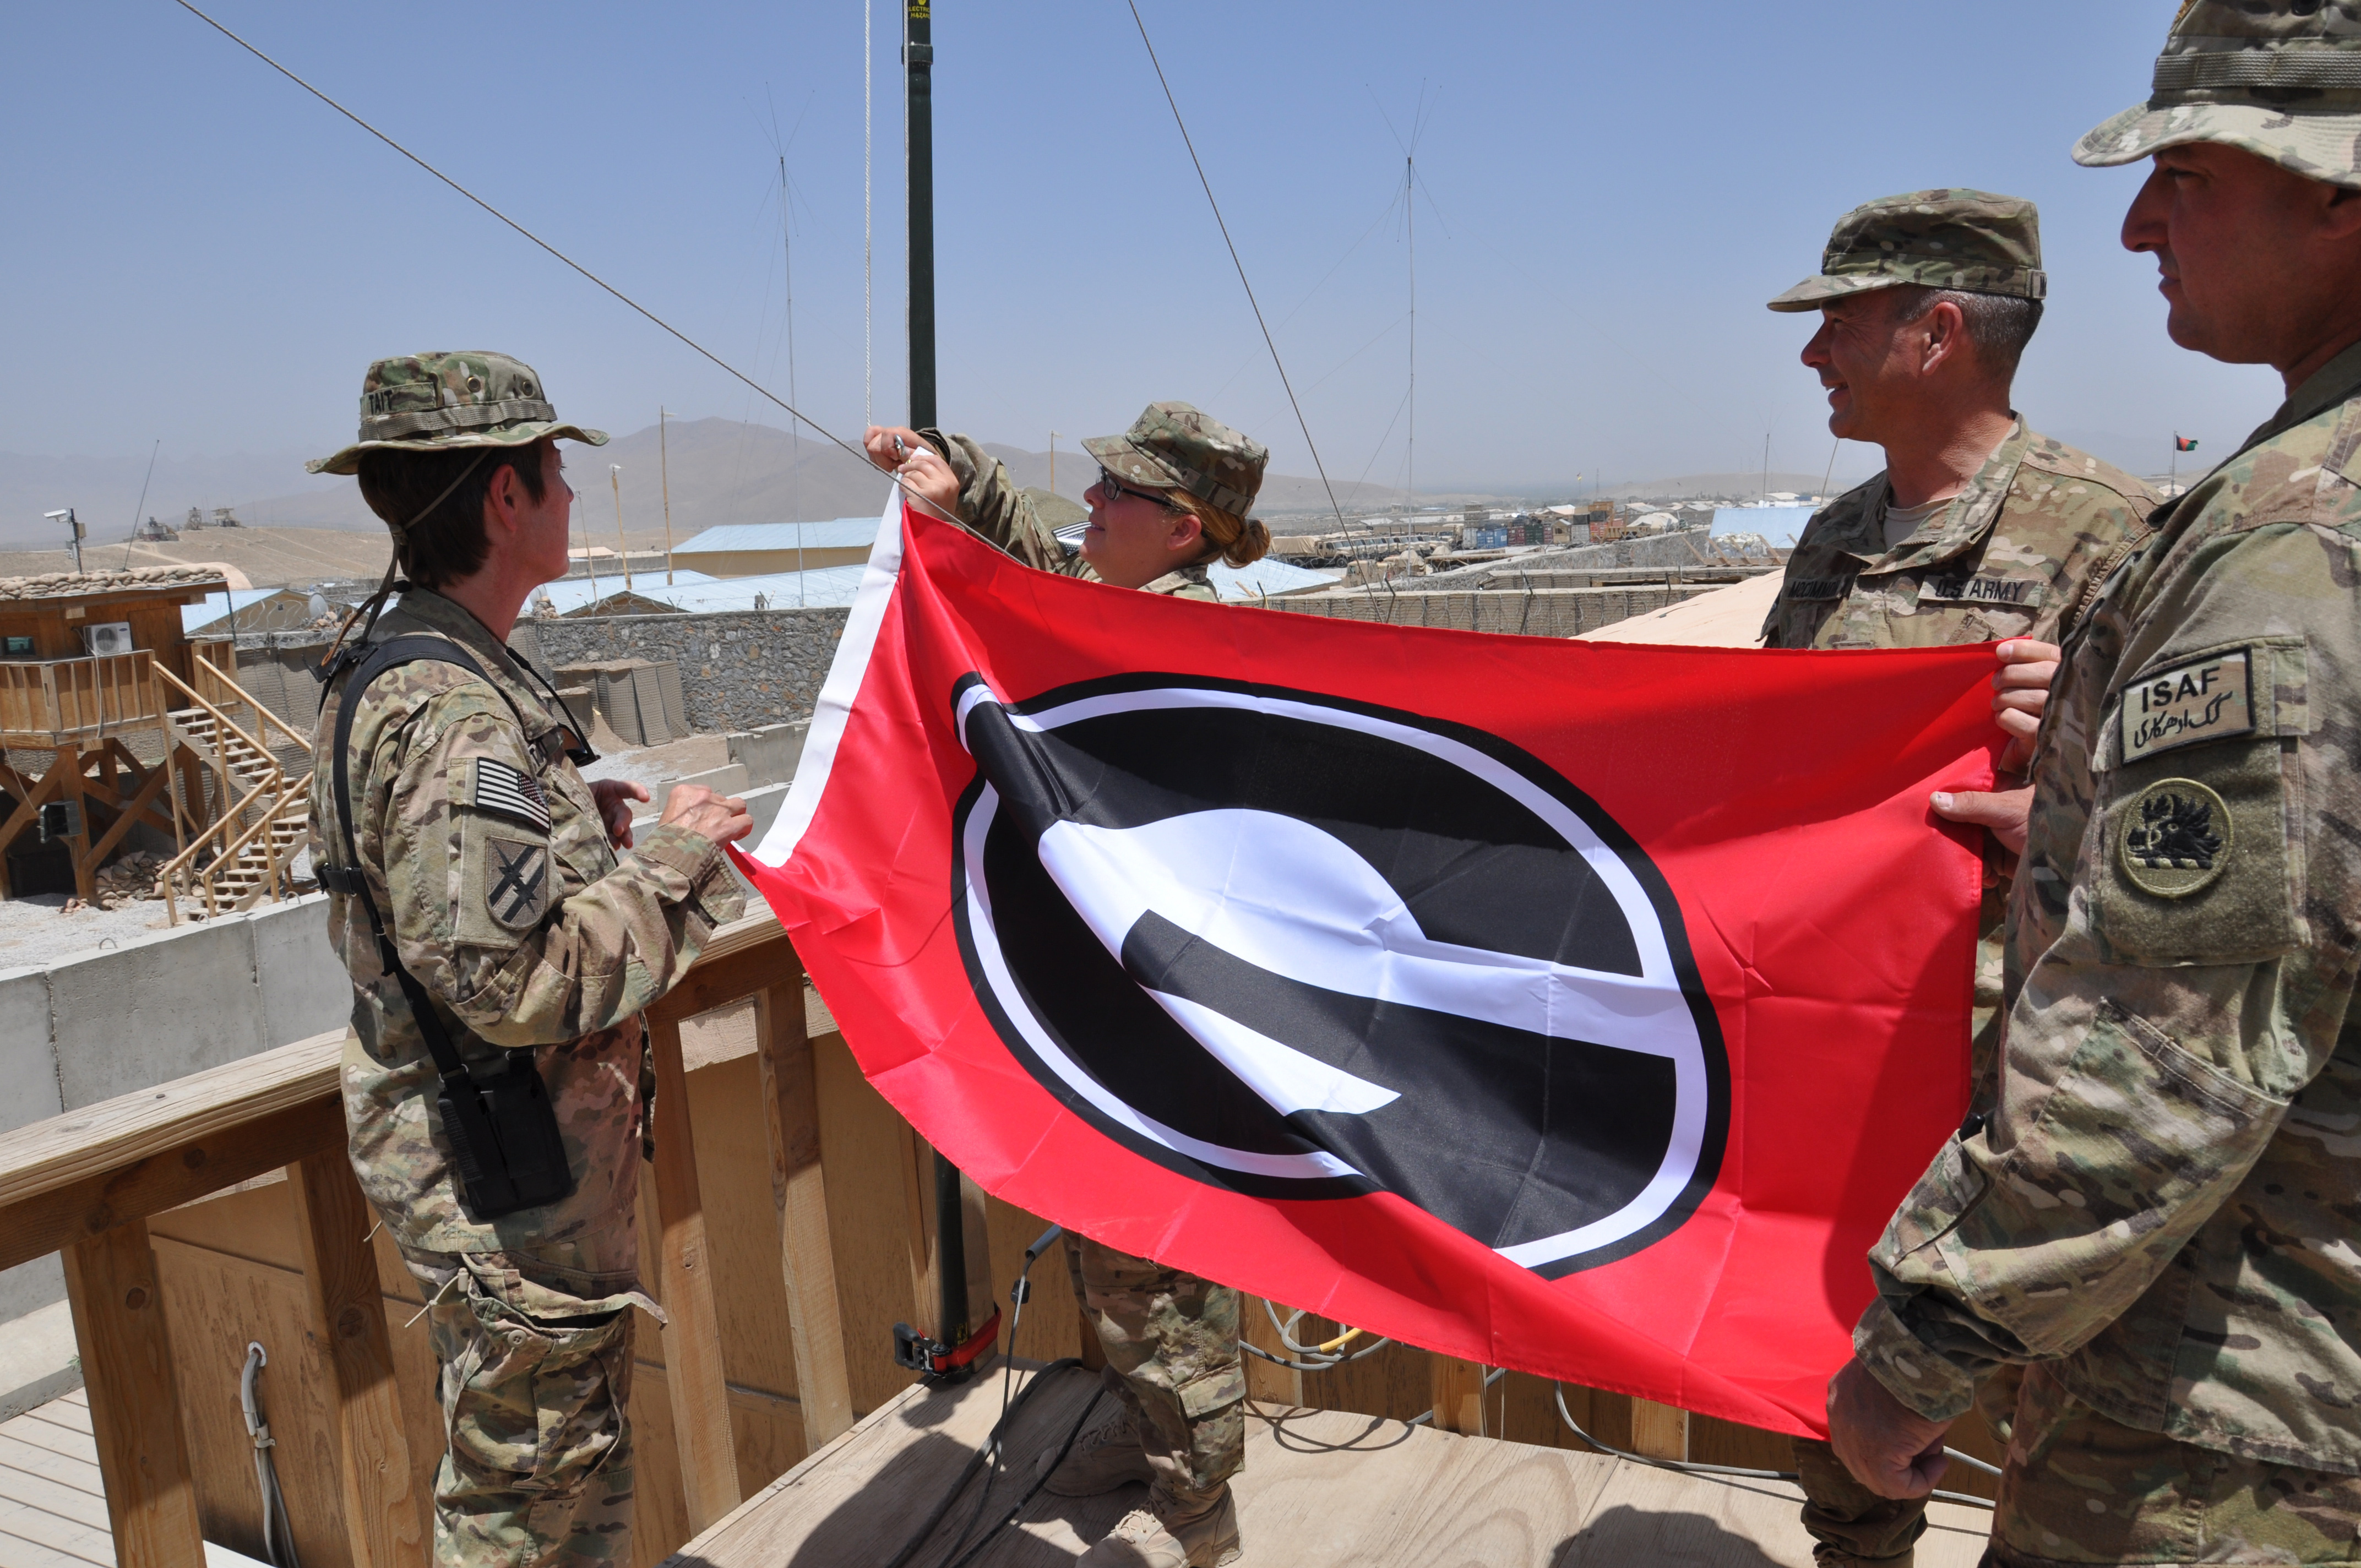 Georgia National Guardsmen with the 201st Regional Support Group's Agribusiness Development Team hoist a University of Georgia flag over their base in Logar Province, Afghanistan. The Augusta-based unit served in Afghanistan from May 2011 to May 2012. They will present a base flag, now autographed and war torn, to the administration of the UGA College of Agricultural and Environmental Sciences during a ceremony June 11 at Conner Hall on UGA's Athens Campus.